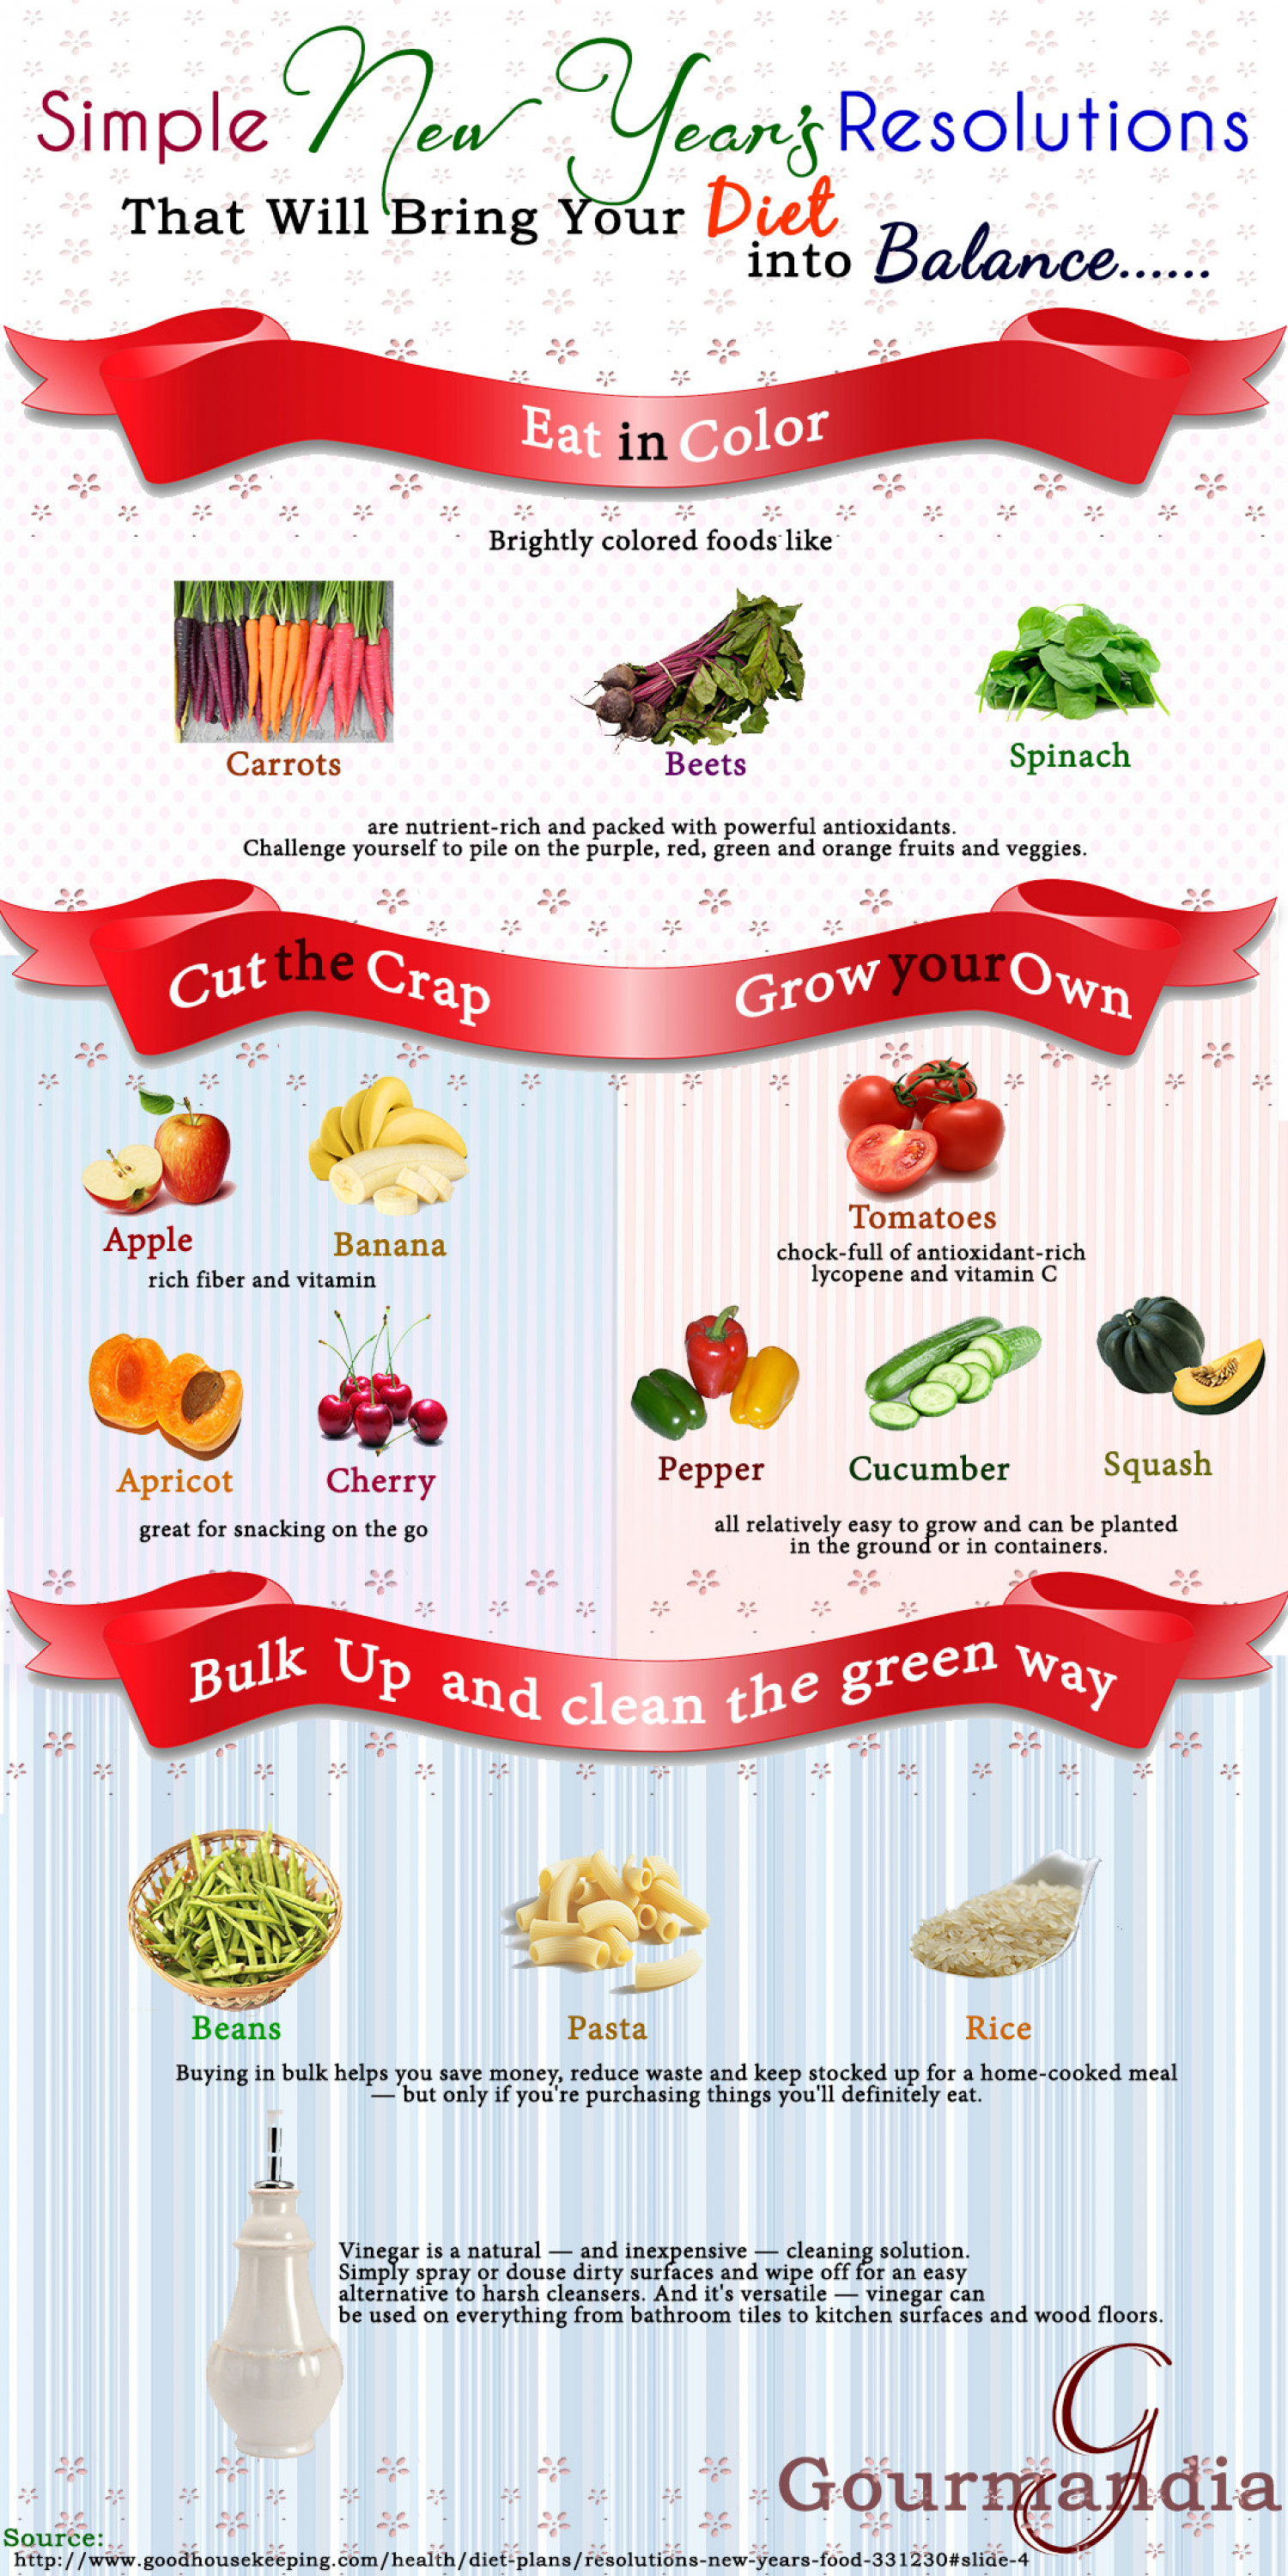 Simple New Year's Resolutions That Will Bring Your Diet into Balance Infographic